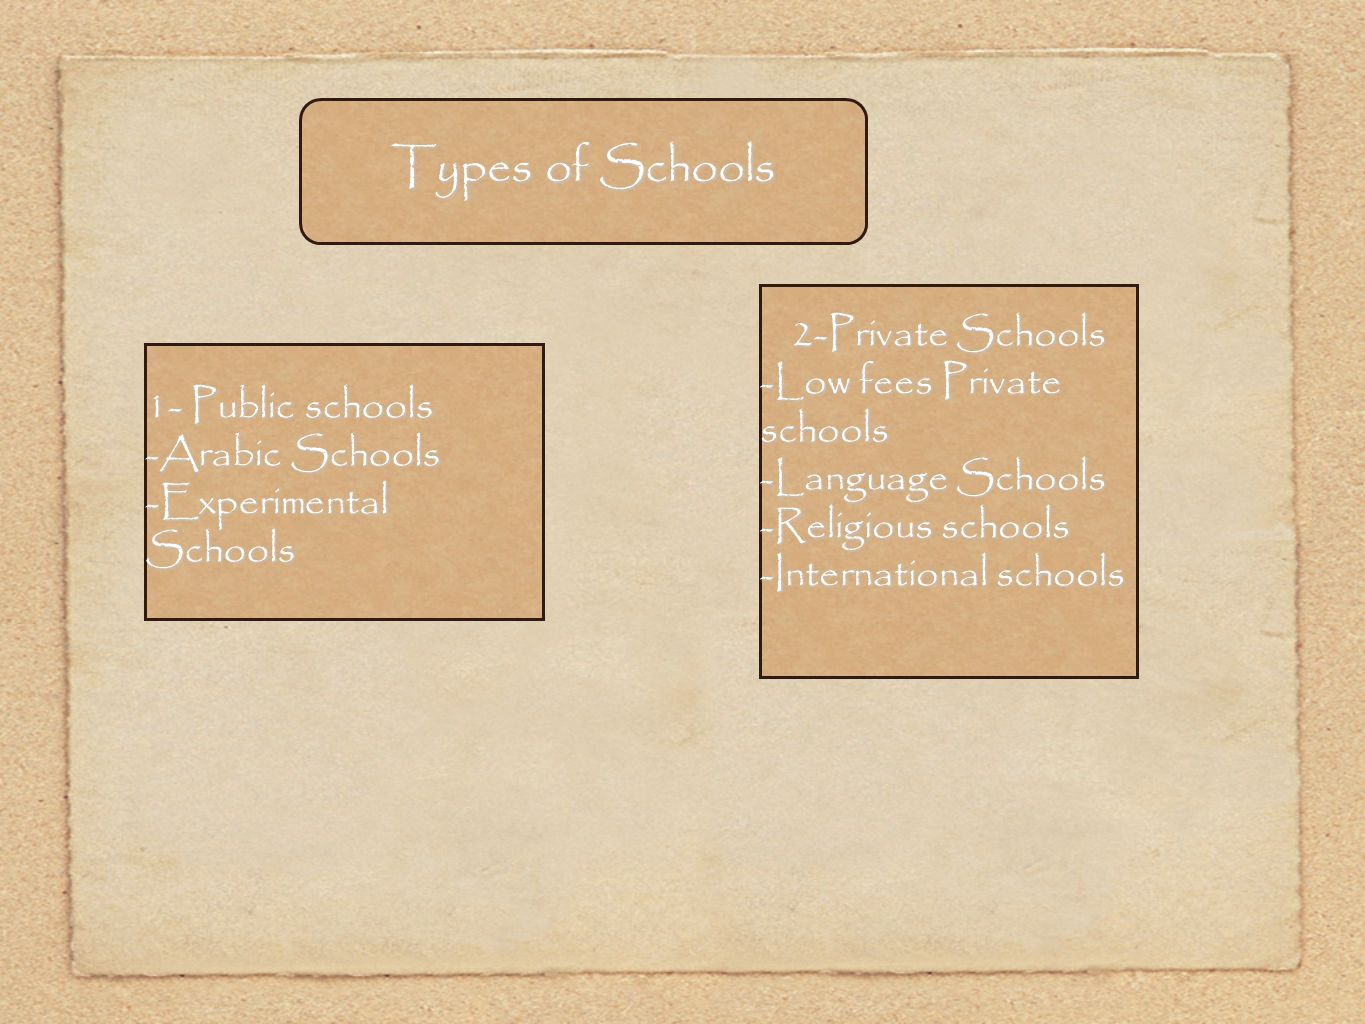 Types of Schools 2-Private Schools -Low fees Private schools